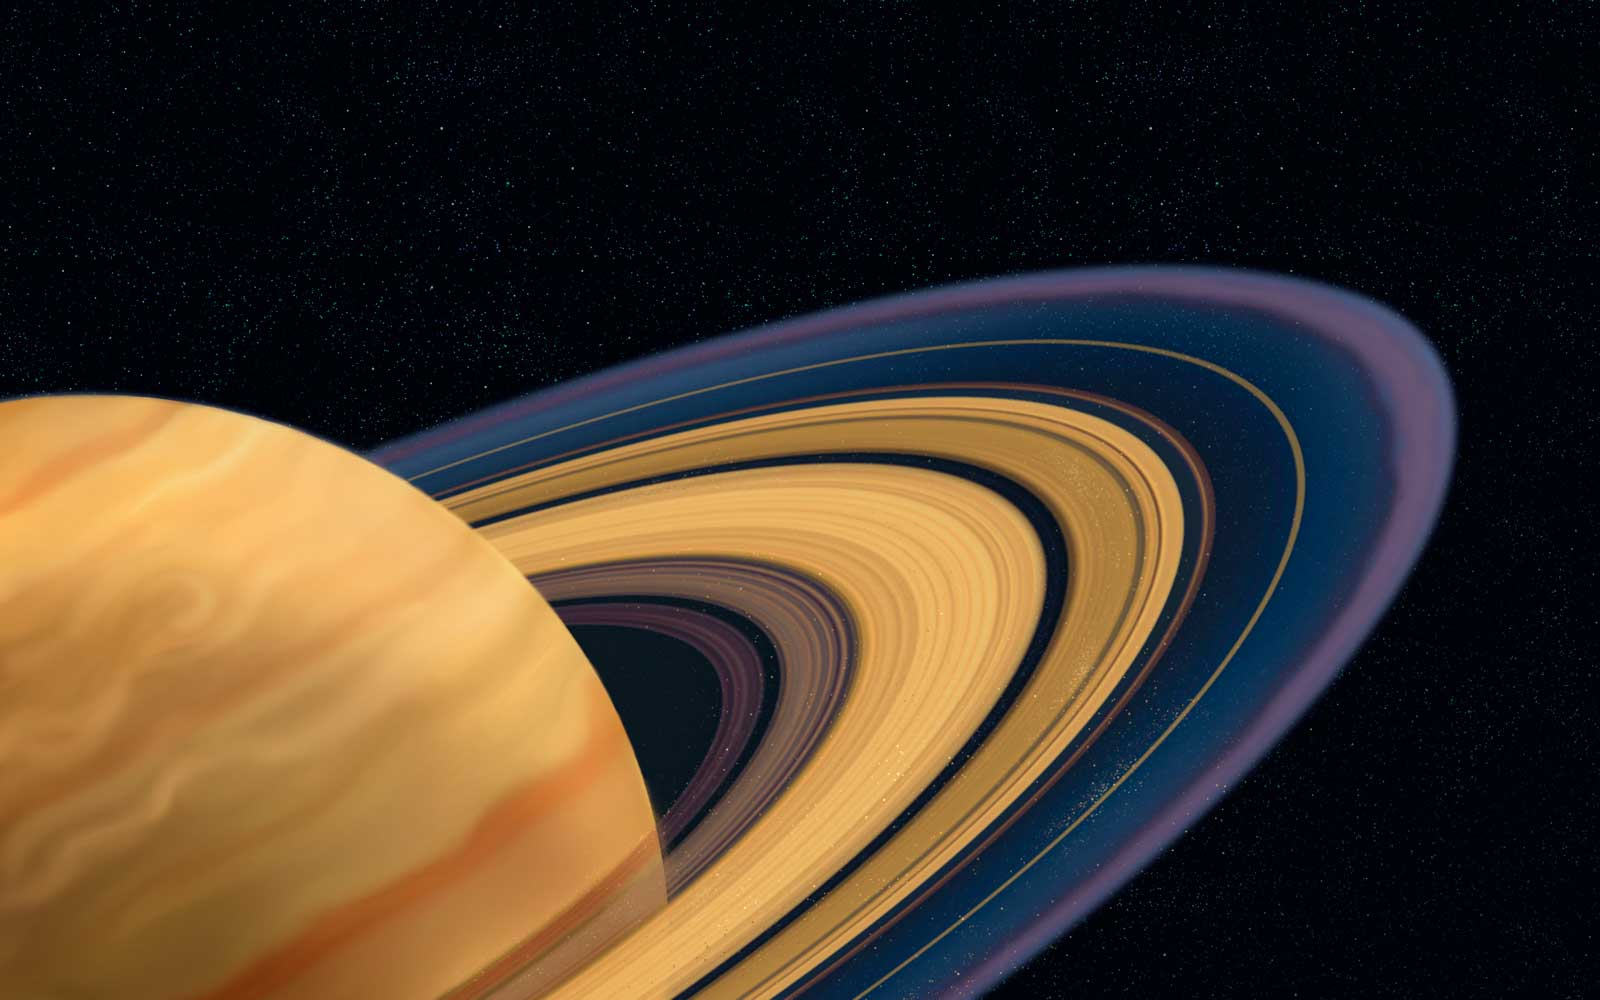 The gaps in Saturn's rings radiate a spooky sound